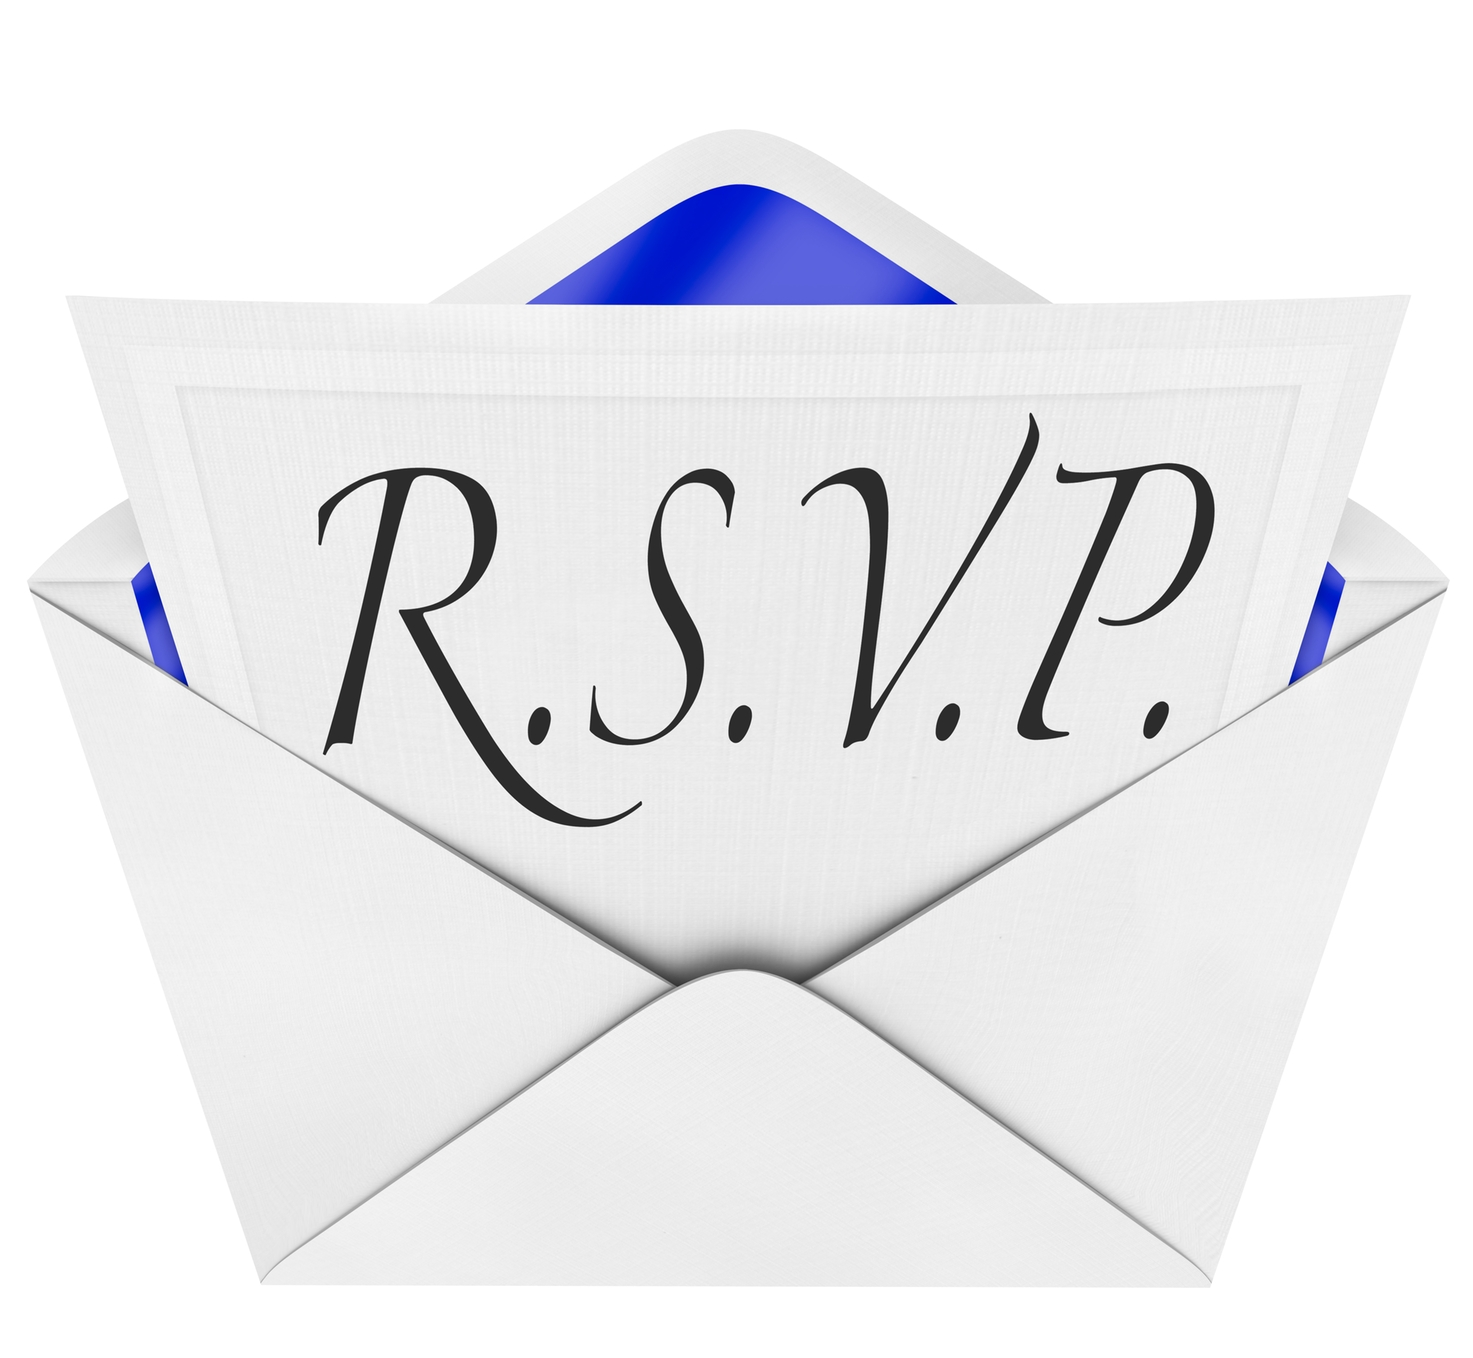 Free RSVP Cliparts, Download Free Clip Art, Free Clip Art on.